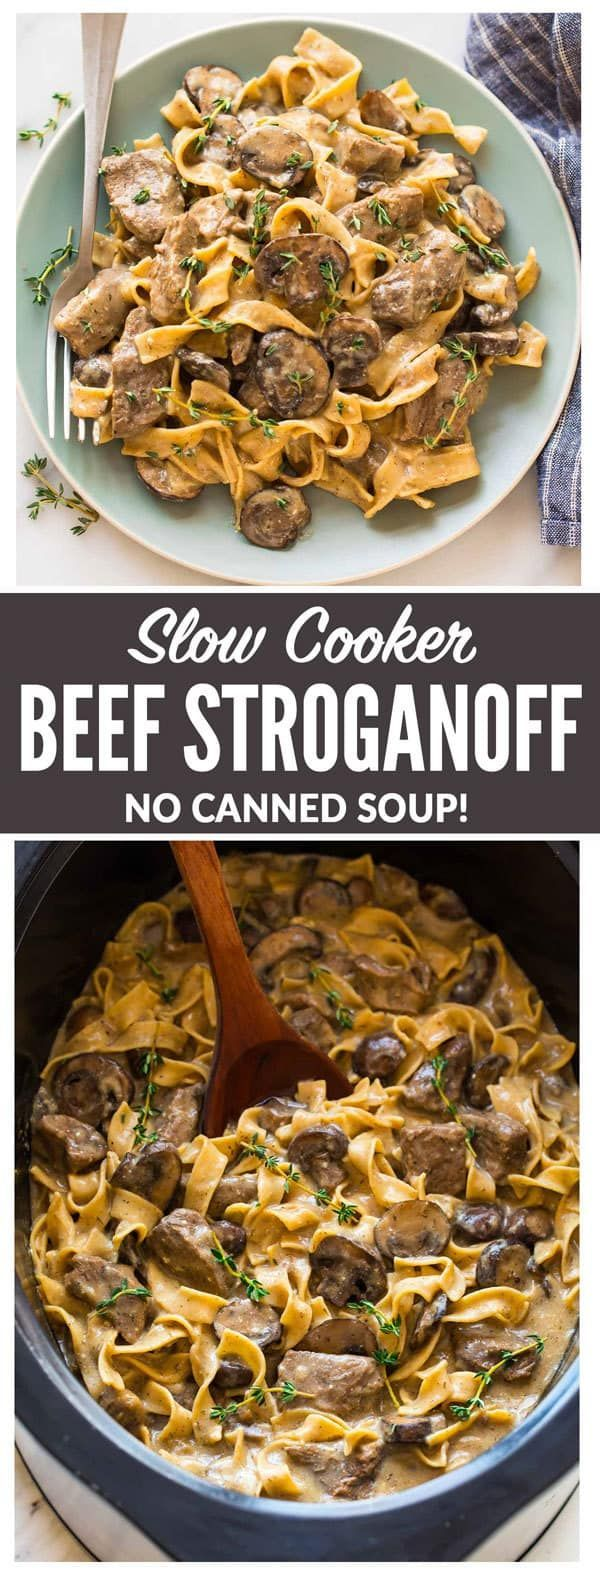 The BEST recipe for Slow Cooker Beef Stroganoff from scratch! Healthy beef stroganoff without canned soup. EASY, creamy crockpot recipe with steak, mushrooms, and Greek yogurt instead of sour cream. #beefstroganoff #healthy #slowcooker #crockpot #wholewheatpastarecipemilk